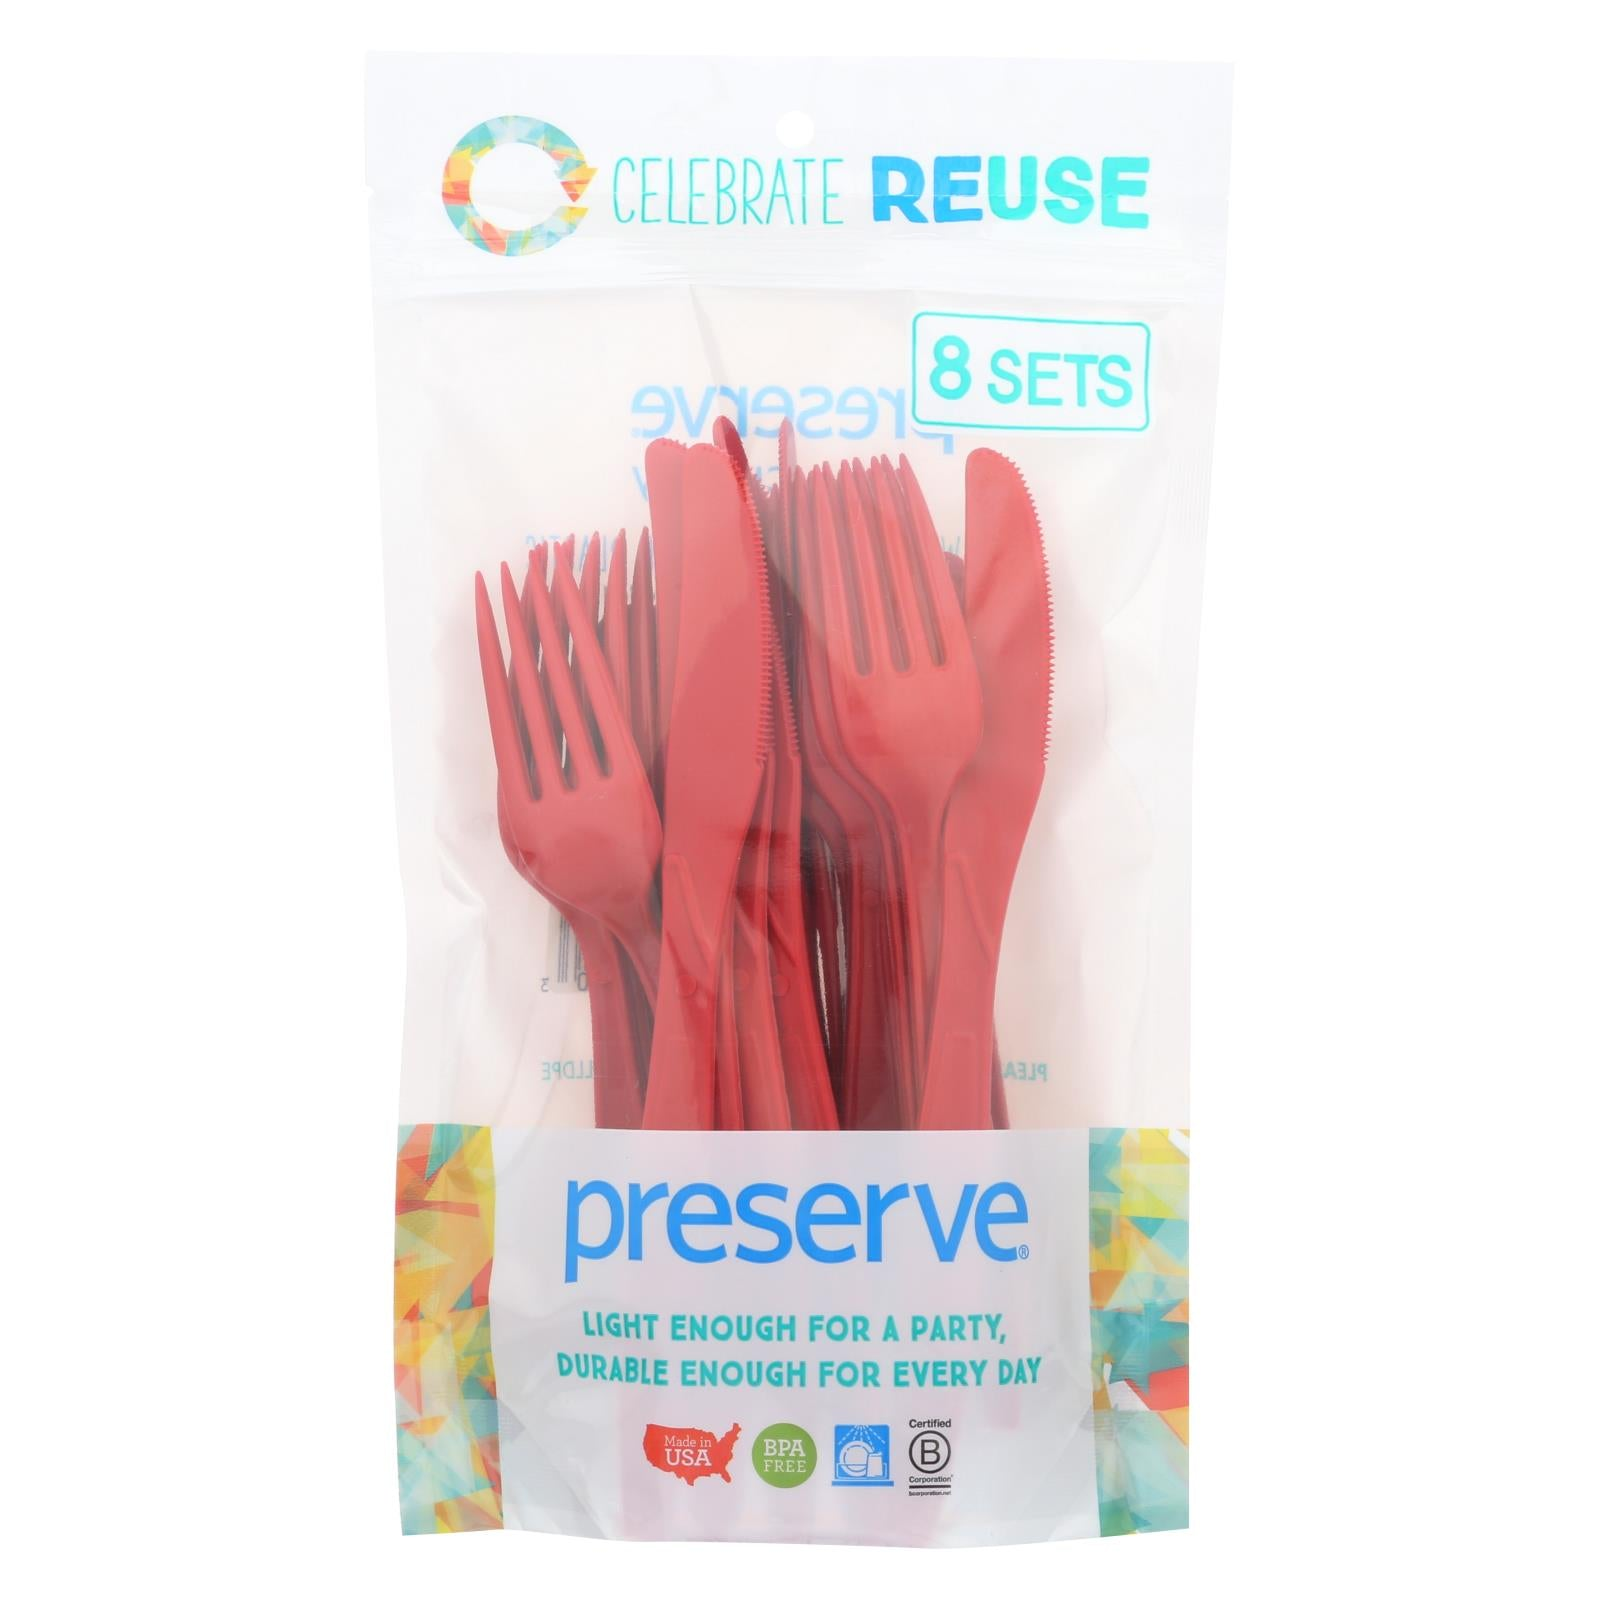 Buy Preserve Heavy Duty Cutlery Sets - Pepper Red - 8 Sets - 24 Pieces total - Tableware from Veroeco.com